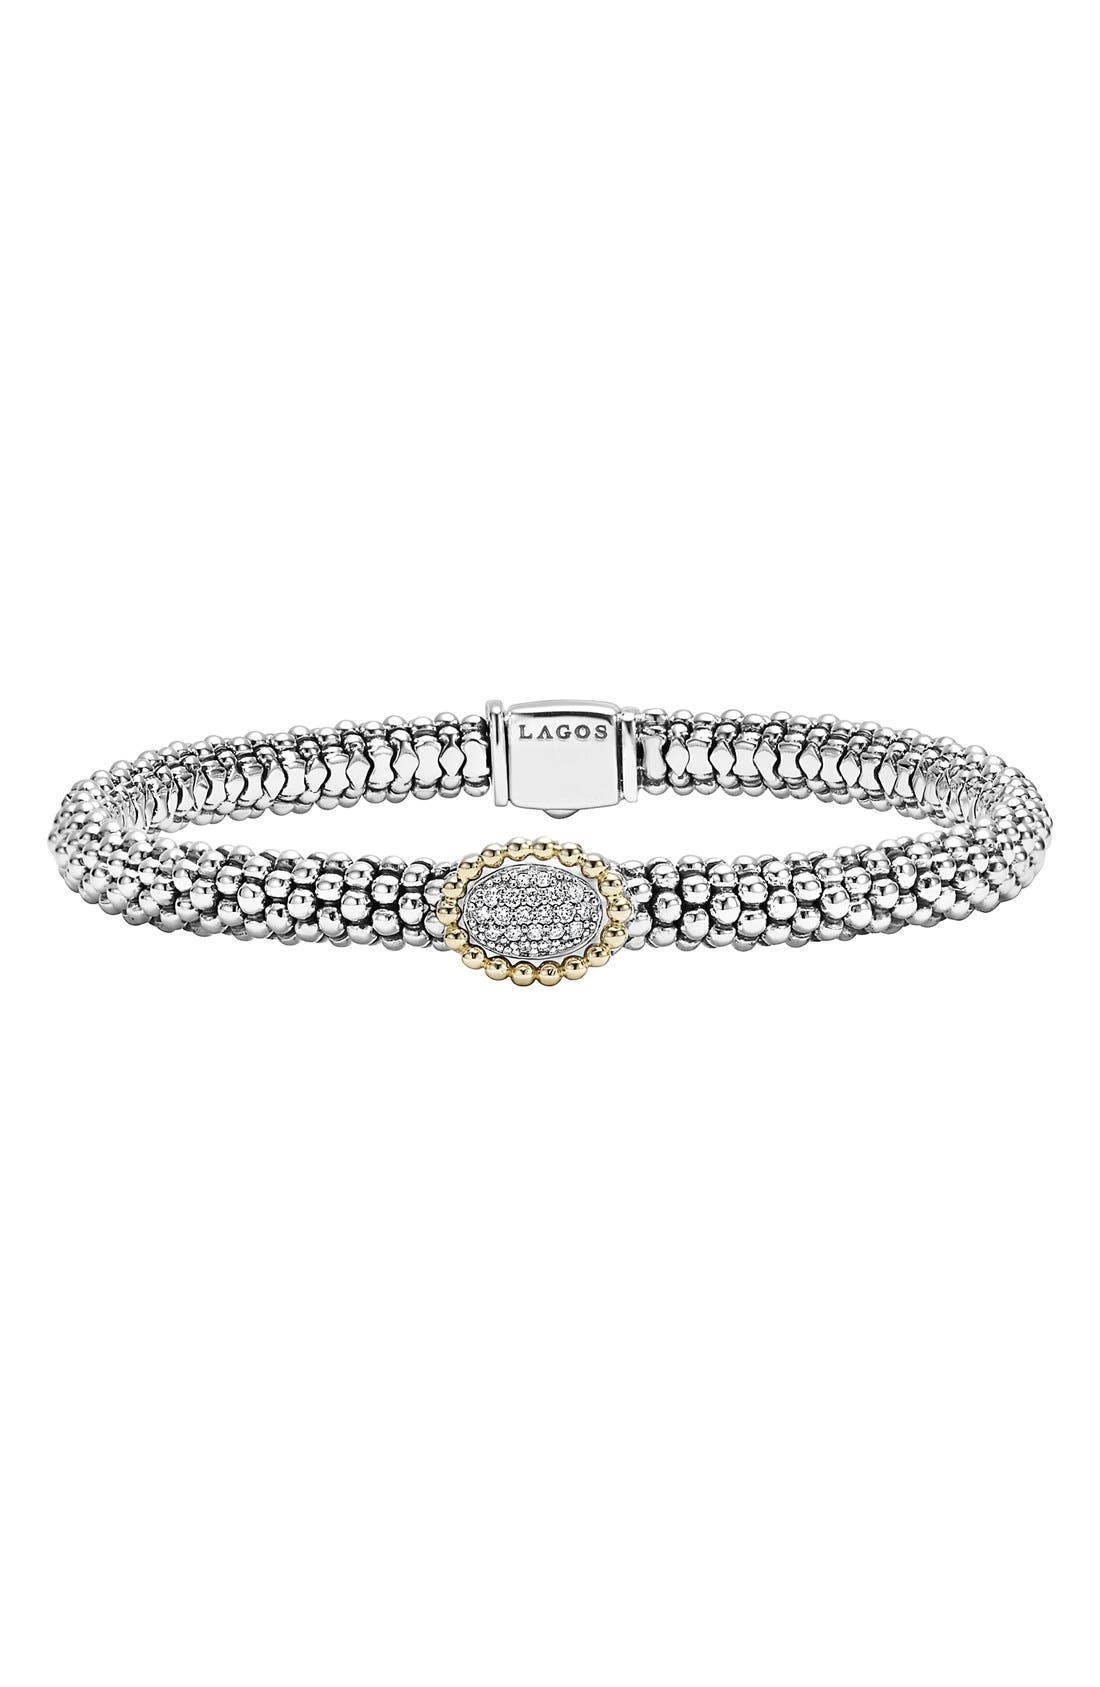 Alternate Image 1 Selected - LAGOS Diamond Caviar Oval Bracelet